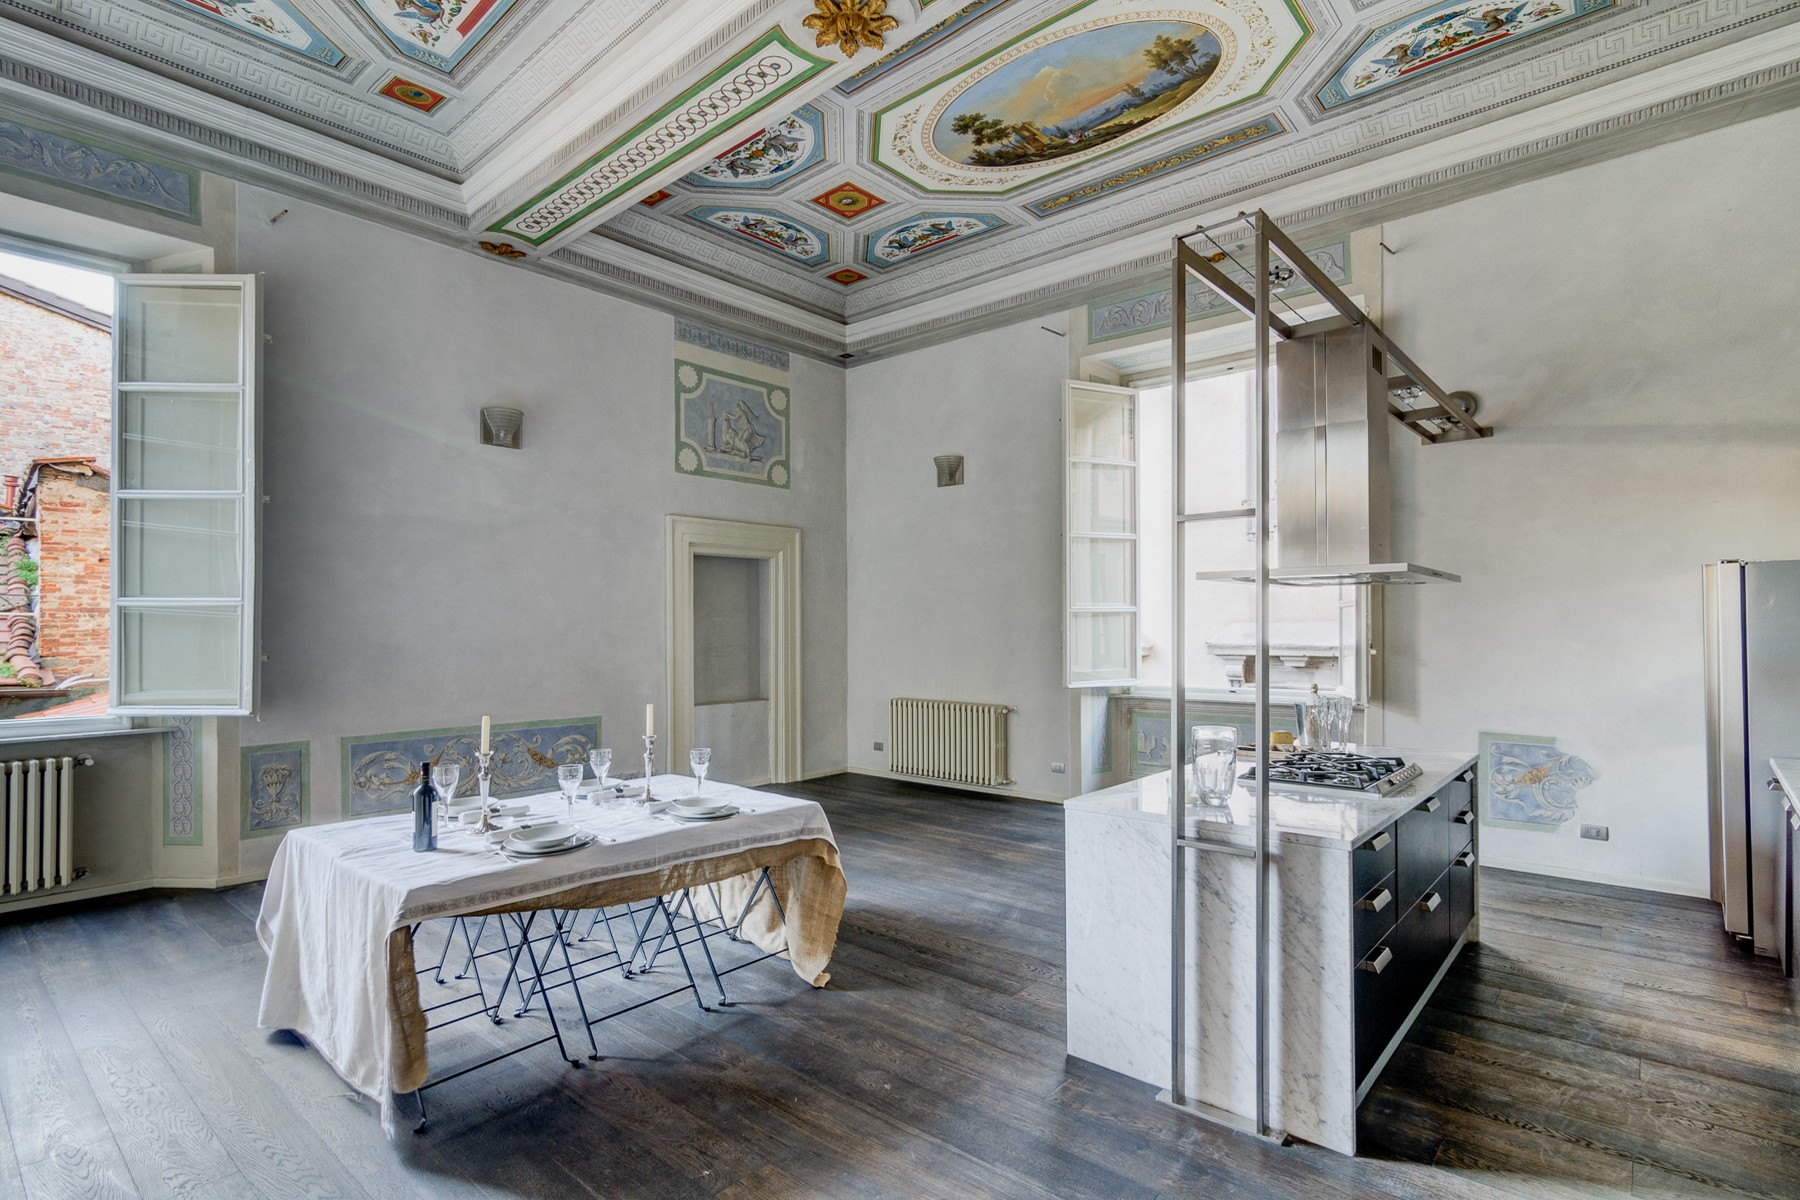 Apartment for Sale at Exclusive and elegant apartment Via San Giorgio Lucca, Lucca 55100 Italy